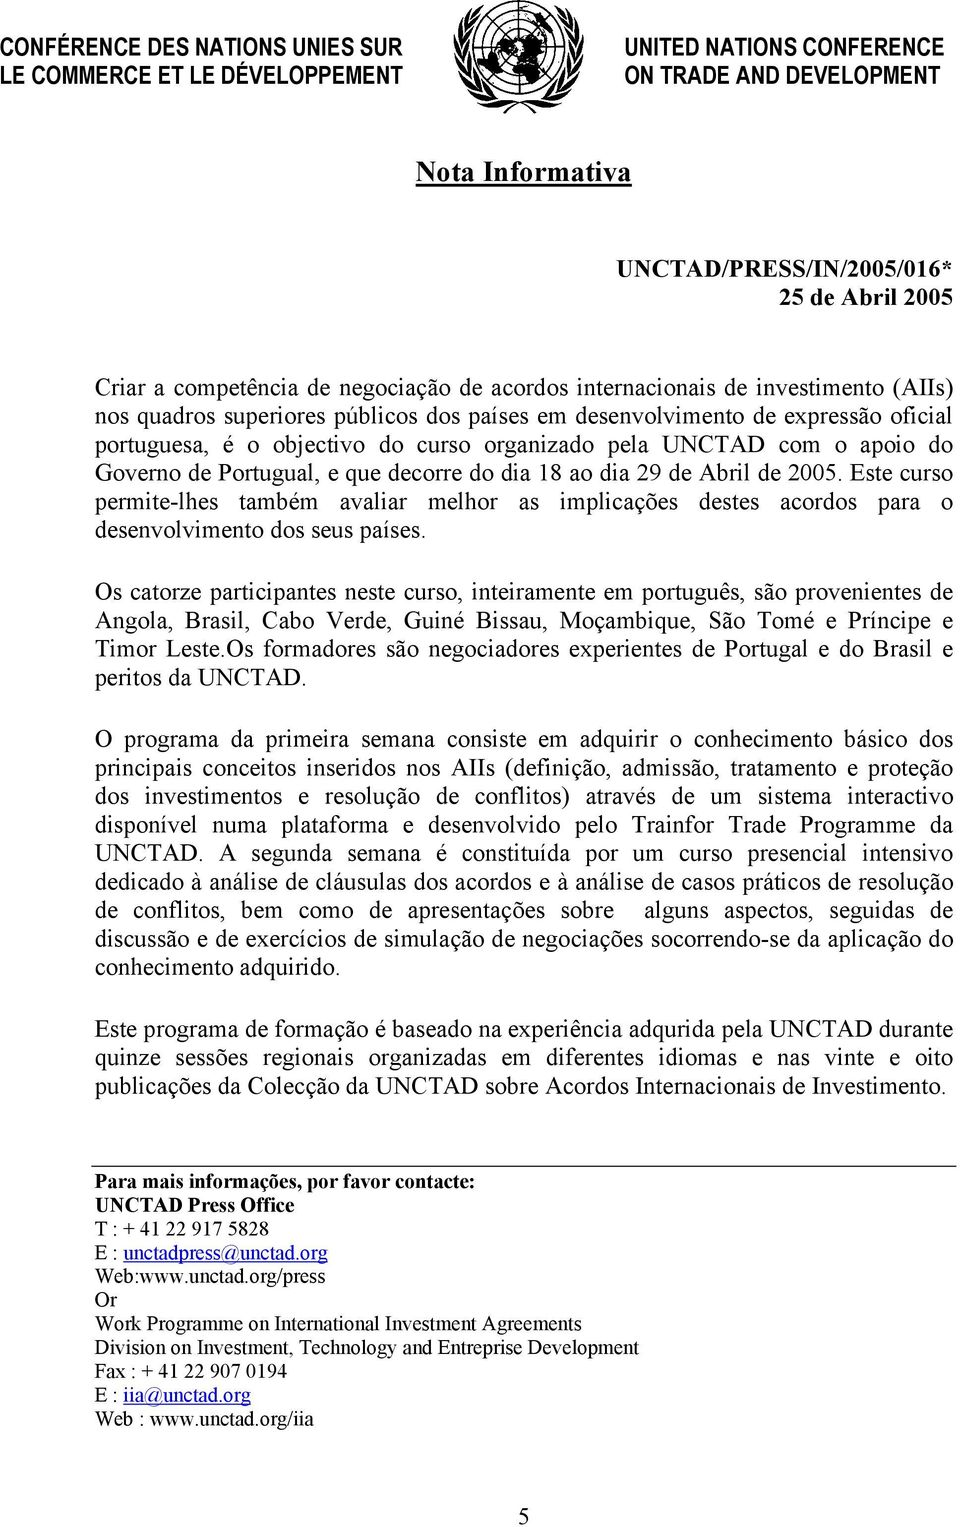 UNCTAD com o apoio do Governo de Portugual, e que decorre do dia 18 ao dia 29 de Abril de 2005.